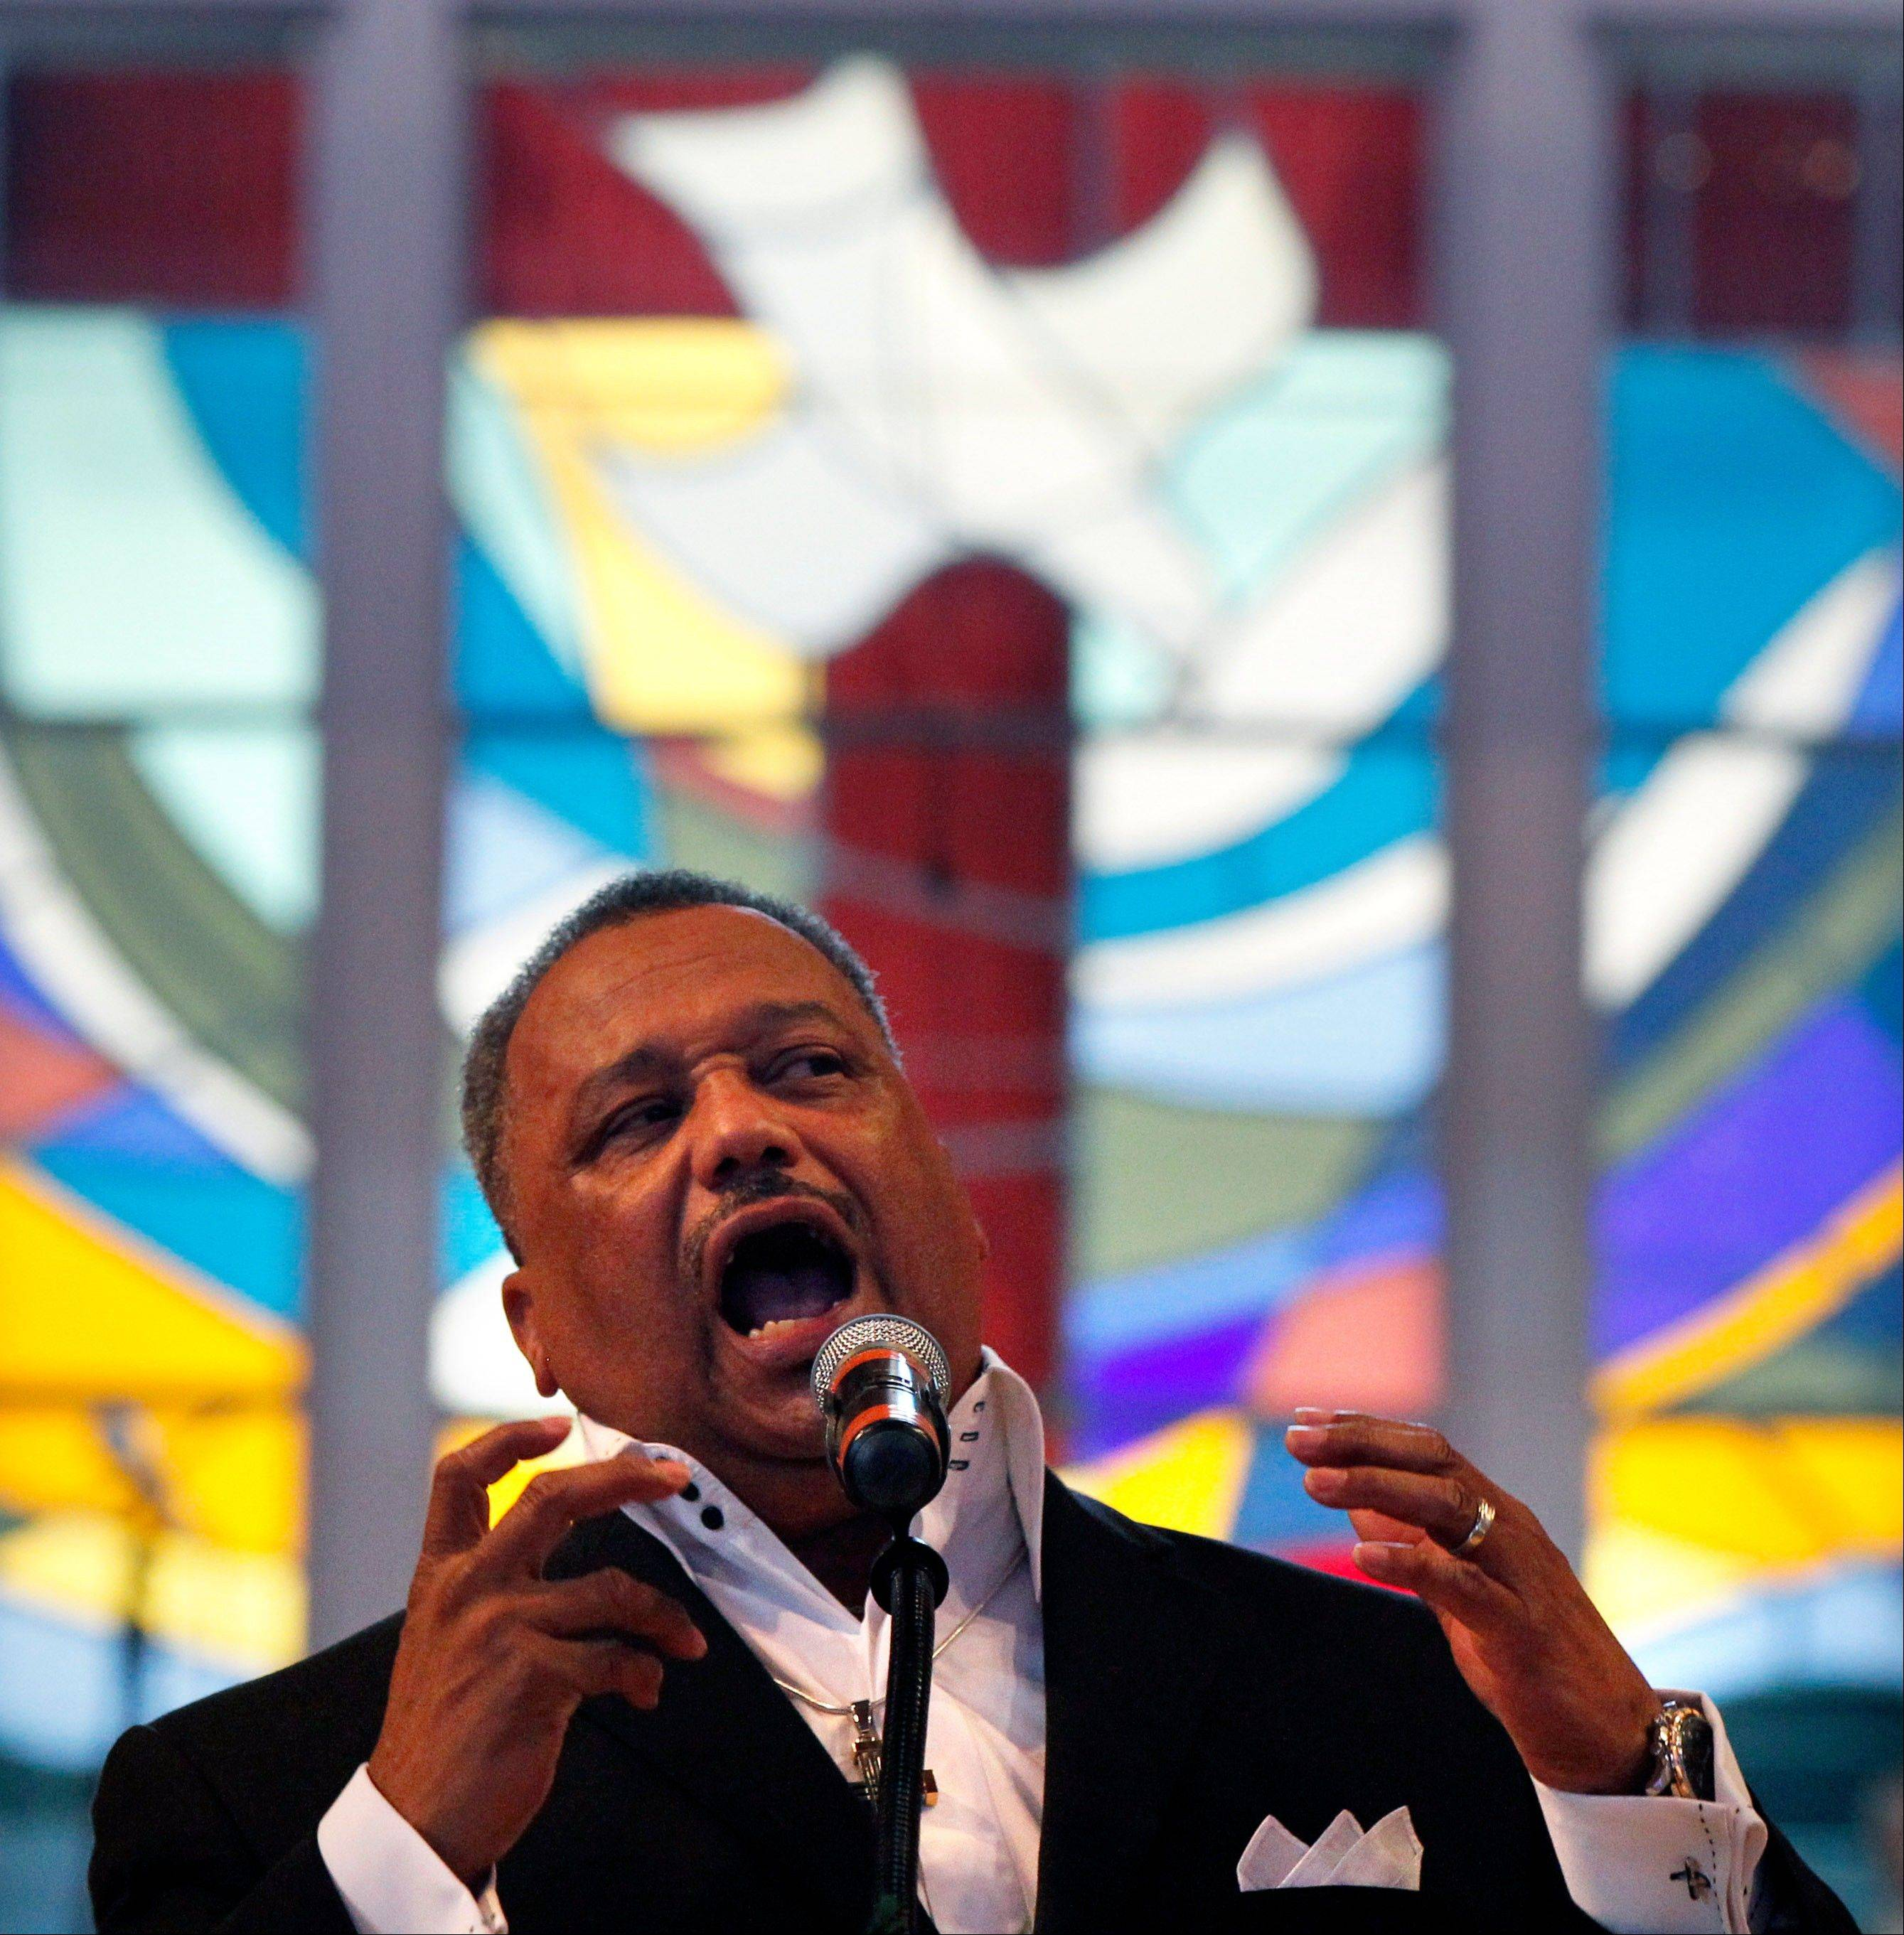 Rev. Fred Luter, pastor of the Franklin Avenue Baptist Church, delivers a sermon during Sunday Services at the Church in New Orleans on June 3. The new face of a Christian denomination that formed on the wrong side of slavery before the Civil War could be an African-American preacher who grew up in New Orleans' Lower 9th Ward. The Southern Baptist Convention holds its annual meeting in New Orleans next week, and it could see the election of Luter as president. Faced with growing diversity in America and declining membership in its churches, the denomination is making a sincere effort to distance itself from its troubled racial past.